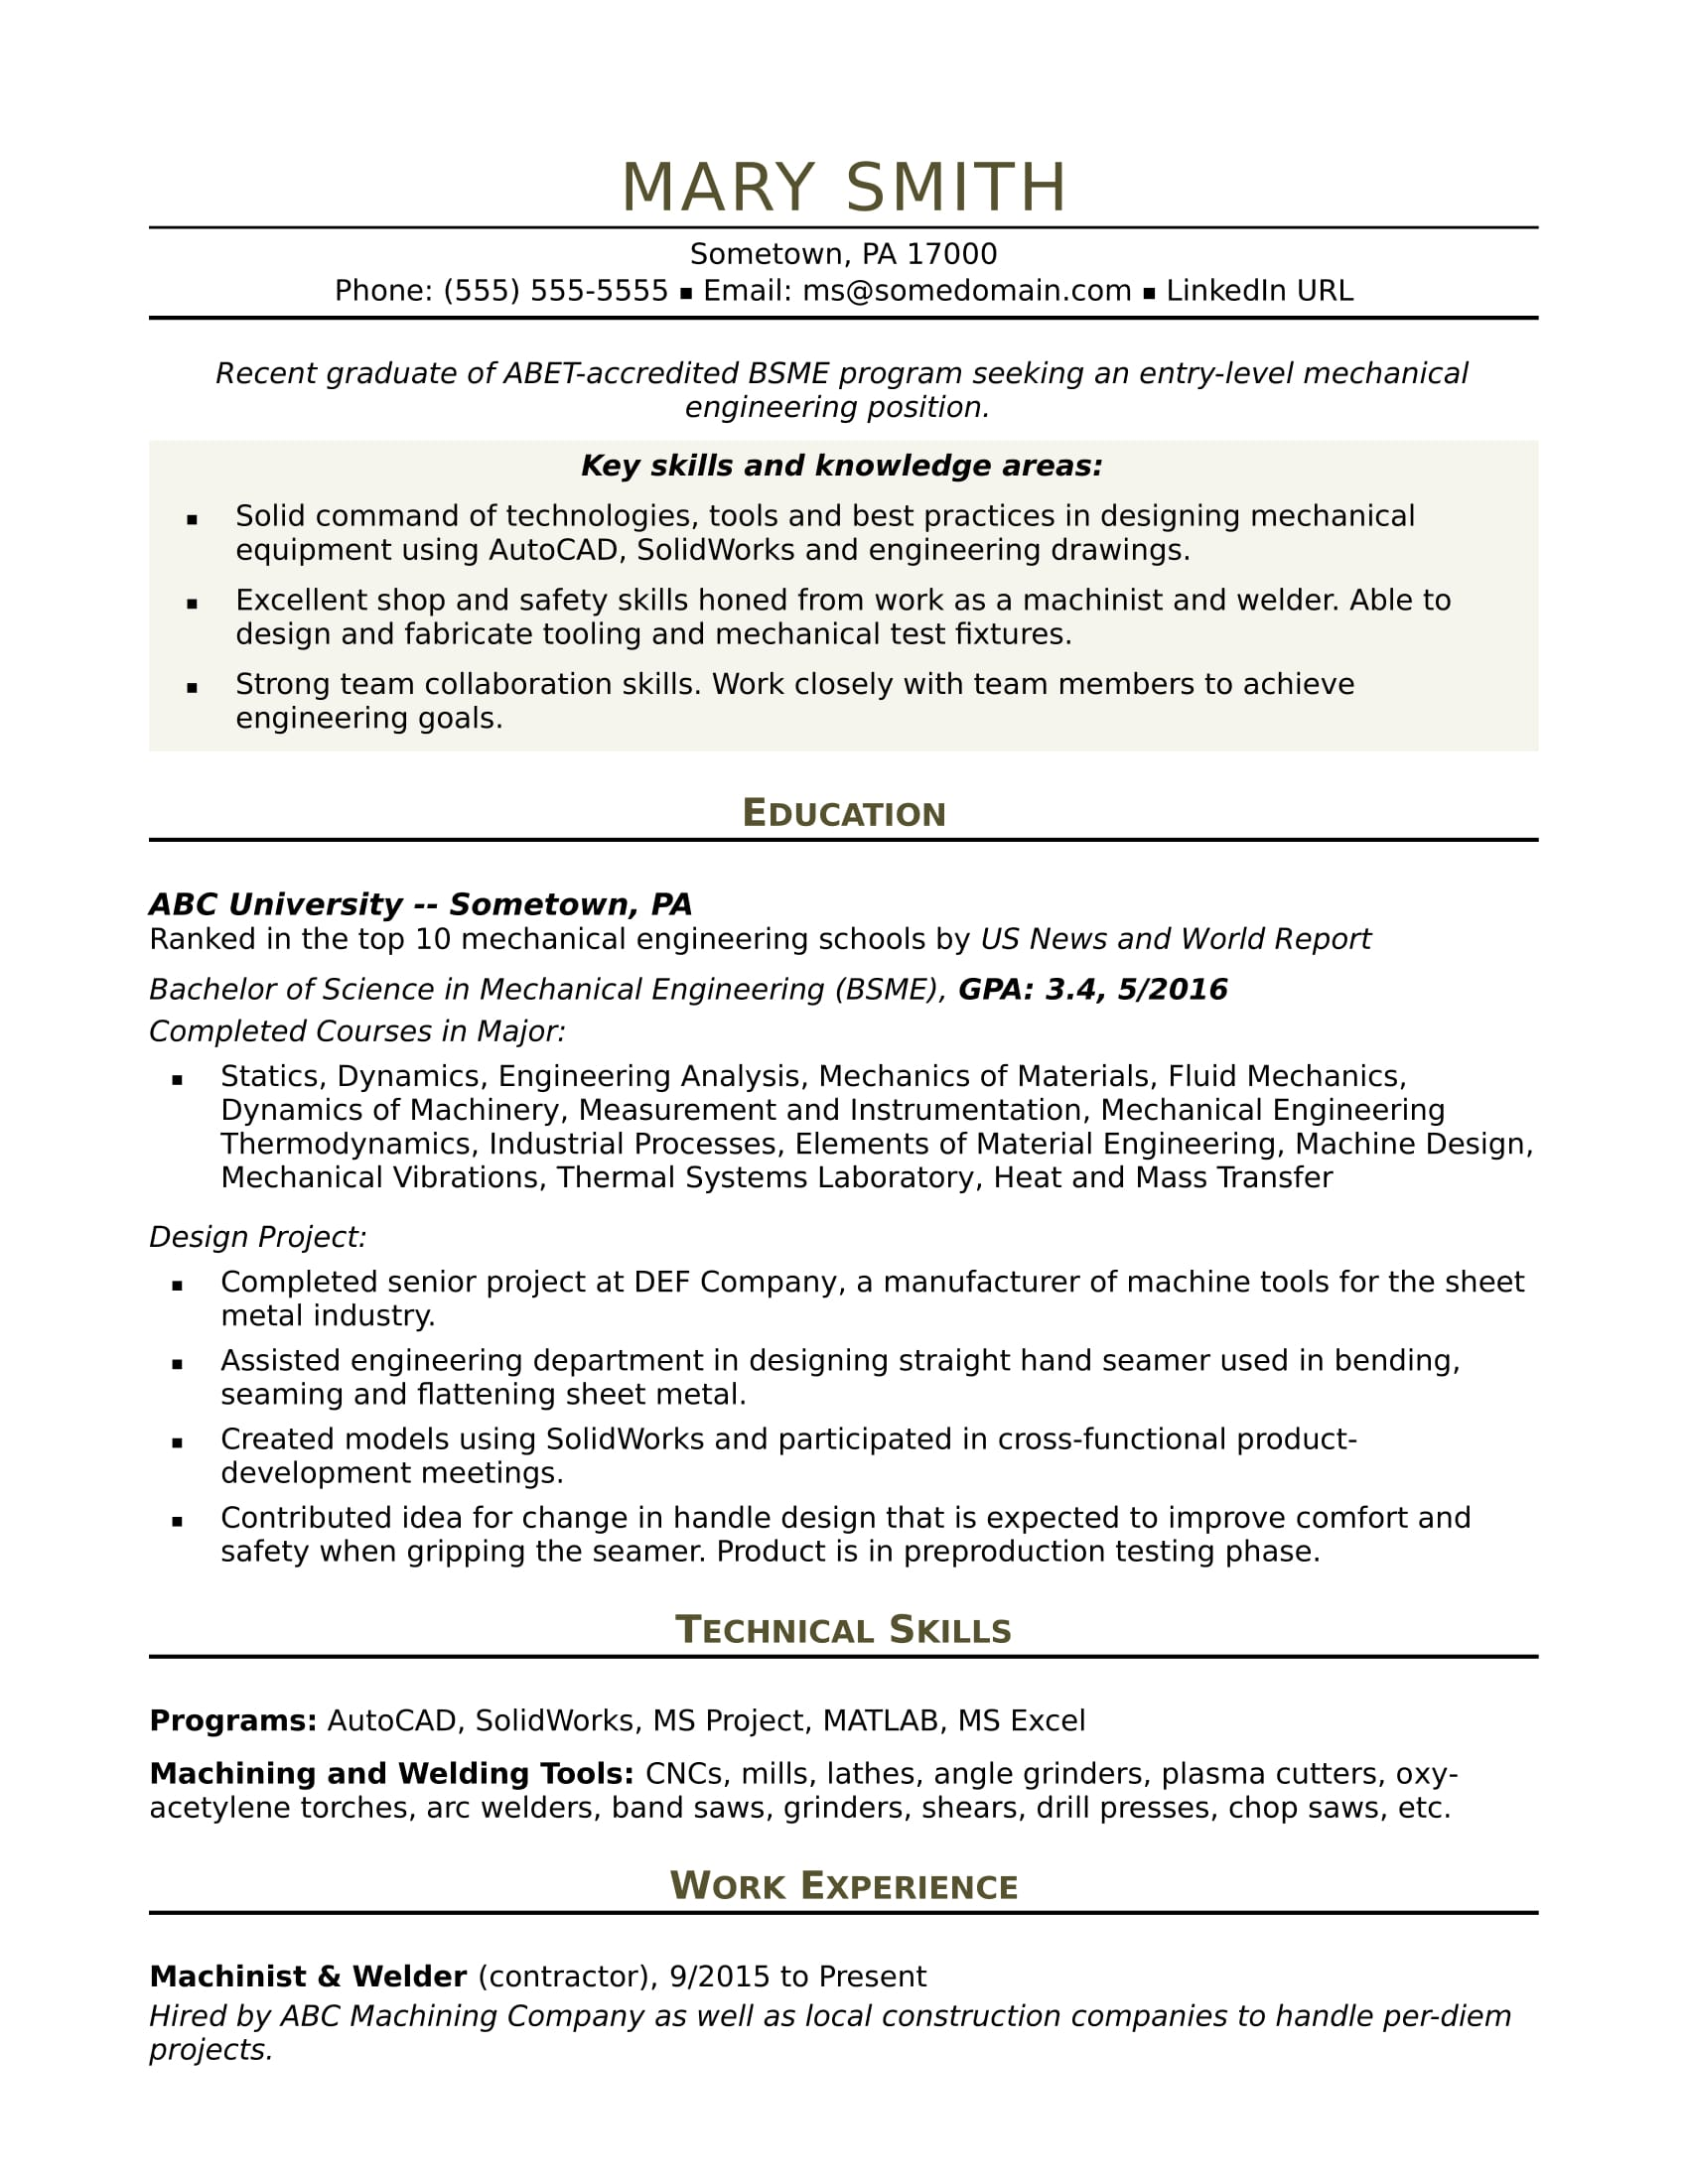 Sample Resume For An Entry-Level Mechanical Engineer | Monster.com